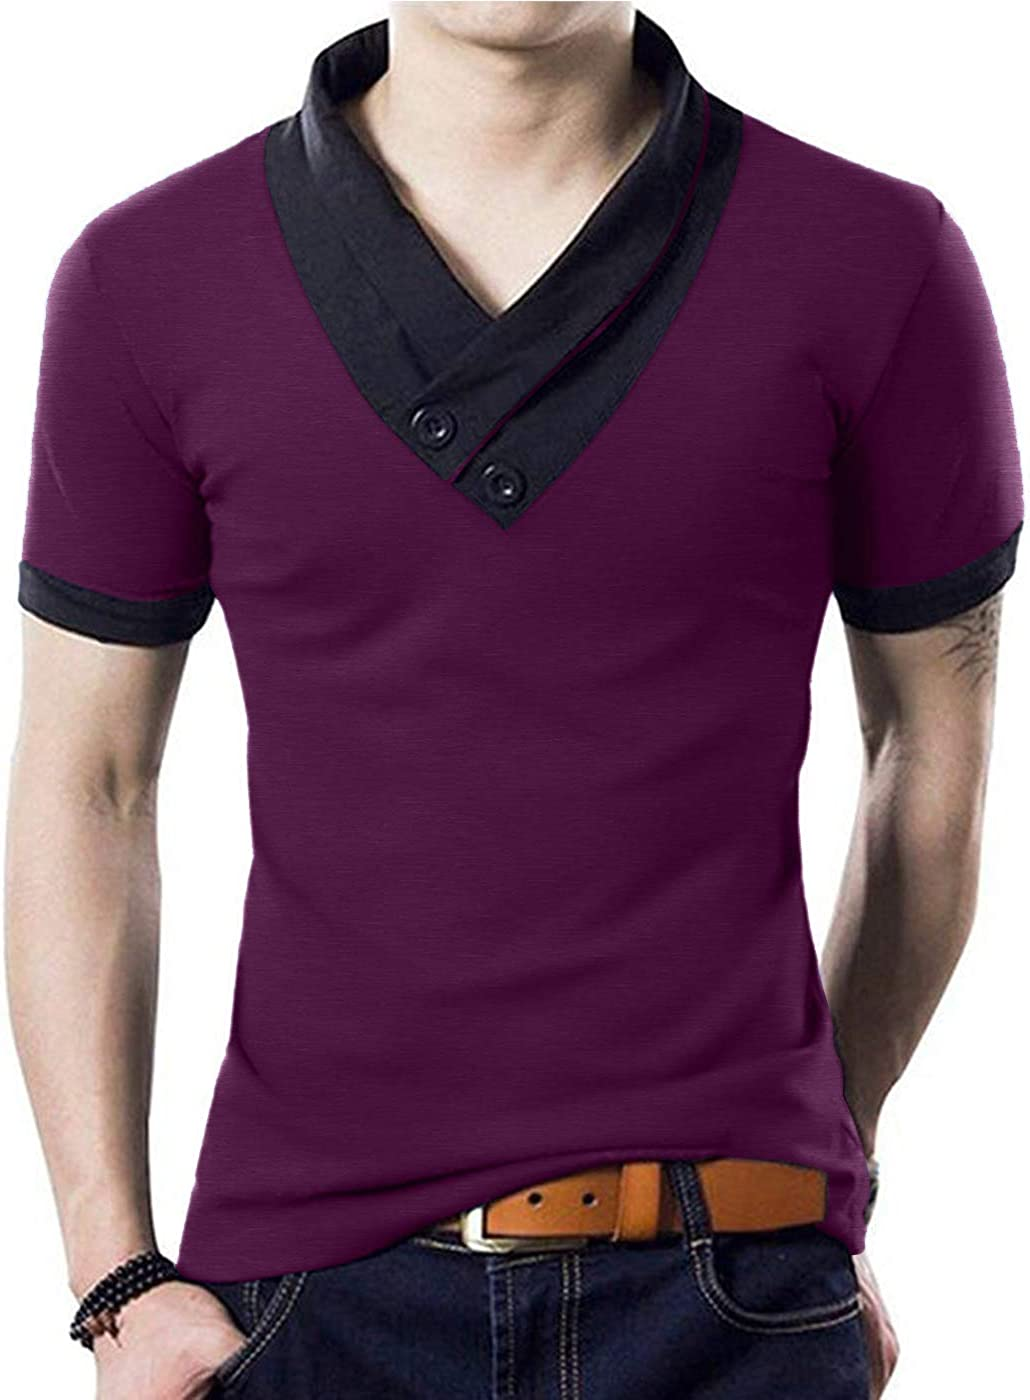 YTD 100% Cotton Inventory cleanup selling sale Mens Casual V-Neck Button S Tee Muscle Tops Special price for a limited time Slim